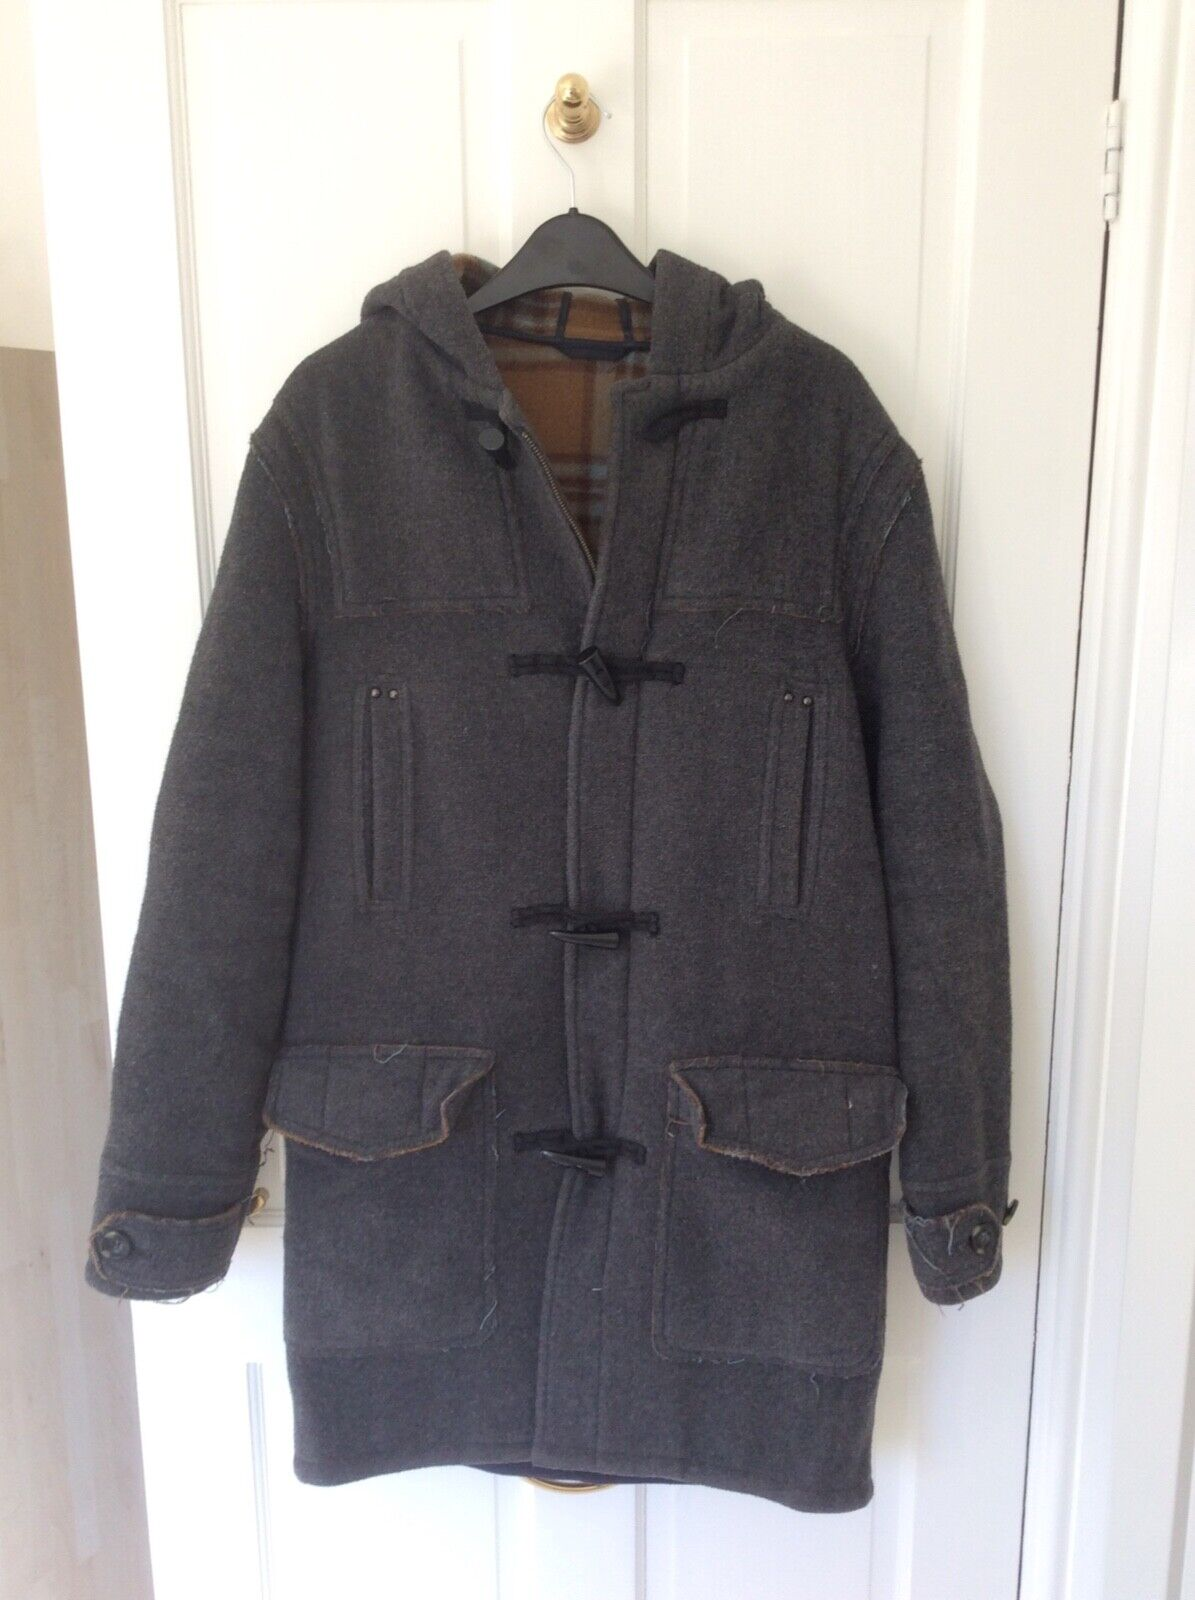 Mens Grey Toggle Fastening Hooded Duffle Wool Coat, Size Small